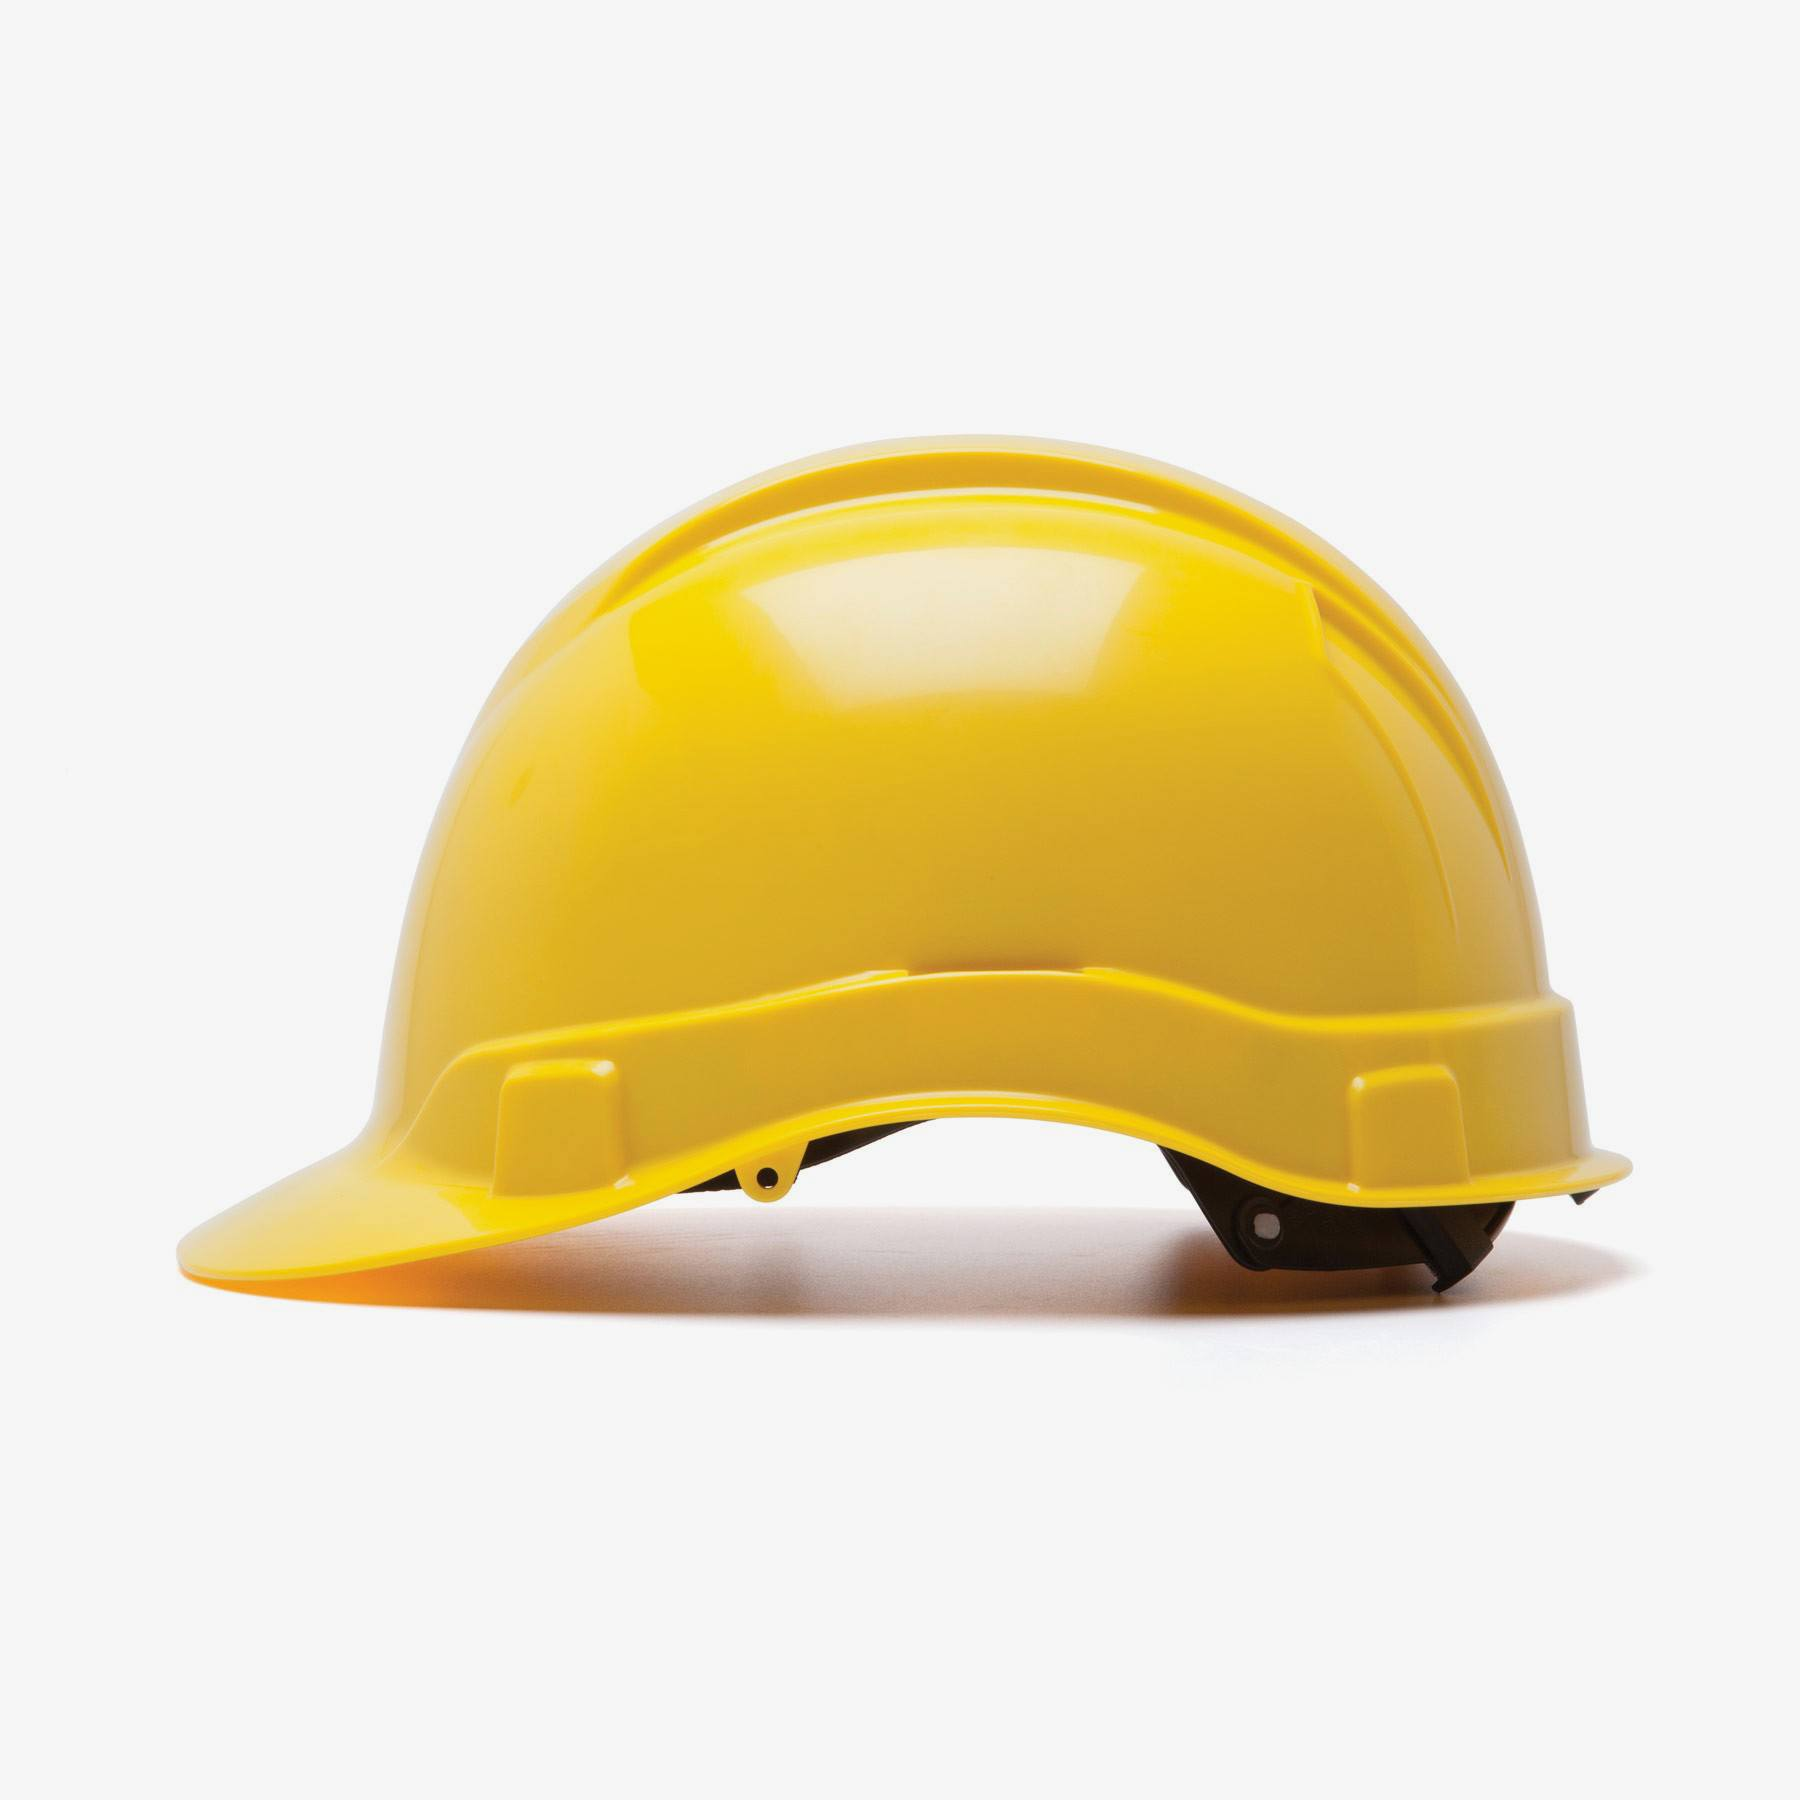 Pyramex Ridgeline 4 Point Ratchet Hard Hat